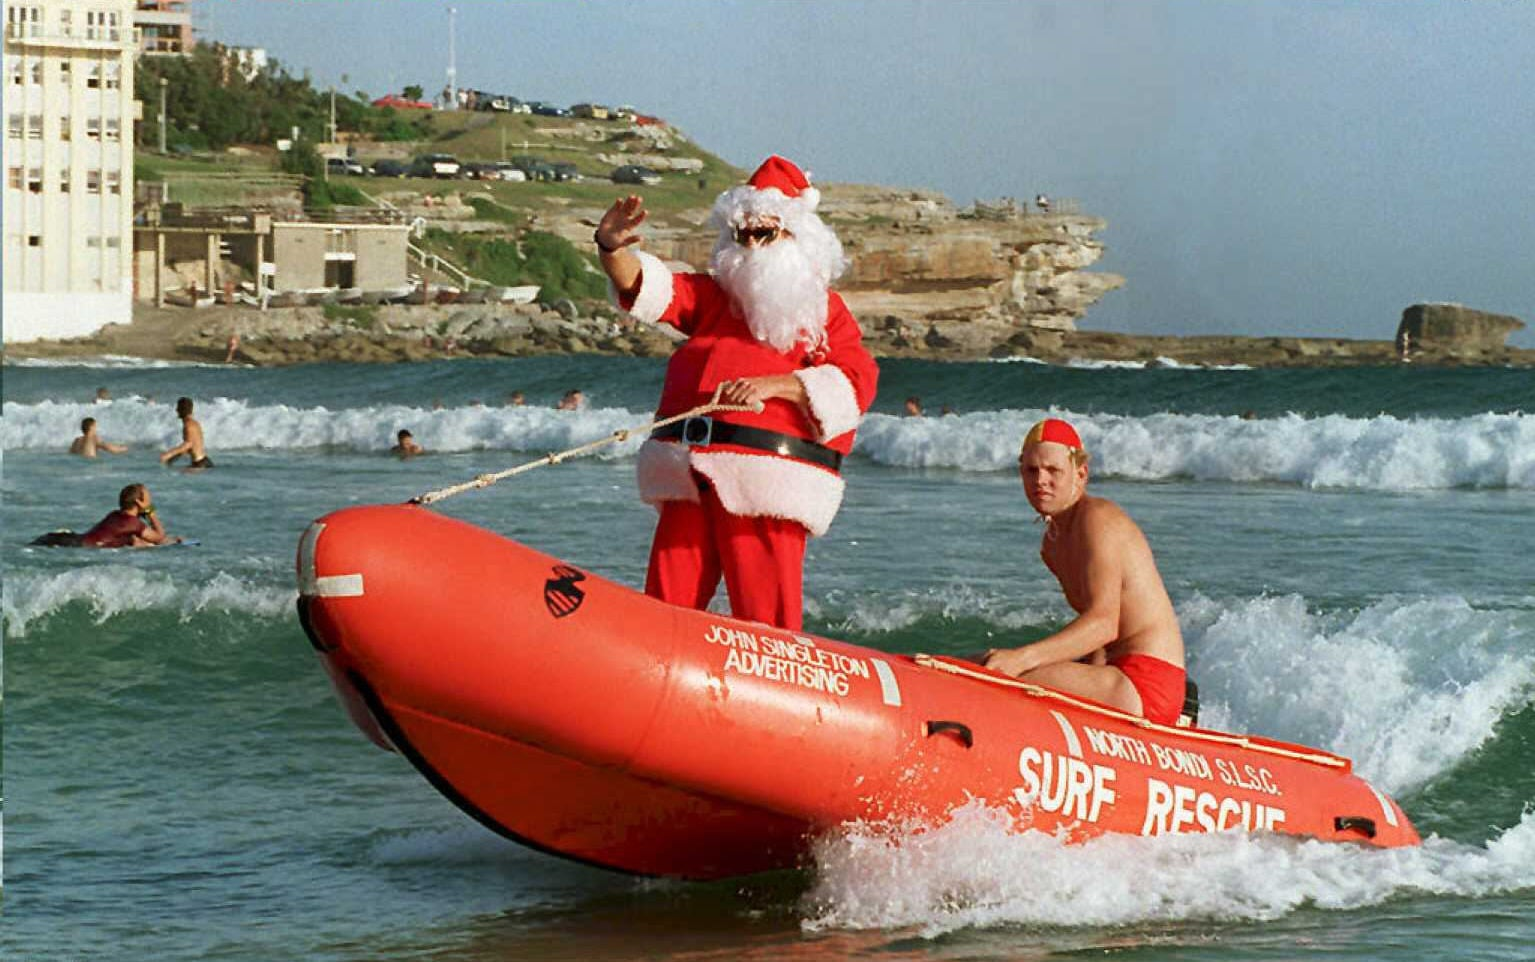 SYDNEY, AUSTRALIA - DECEMBER 22:  Santa Claus arrives aboard a surf rescue inflatable at Sydney's Bondi Beach 22 December where the tradition of volunteer surf lifesaving began in 1903. Sydneysiders celebrate the Christmas season on the harbour and ocean beaches to avoid the summer heatwaves. (Colour key: Santa wears red)  (Photo credit should read TORSTEN BLACKWOOD/AFP/Getty Images)